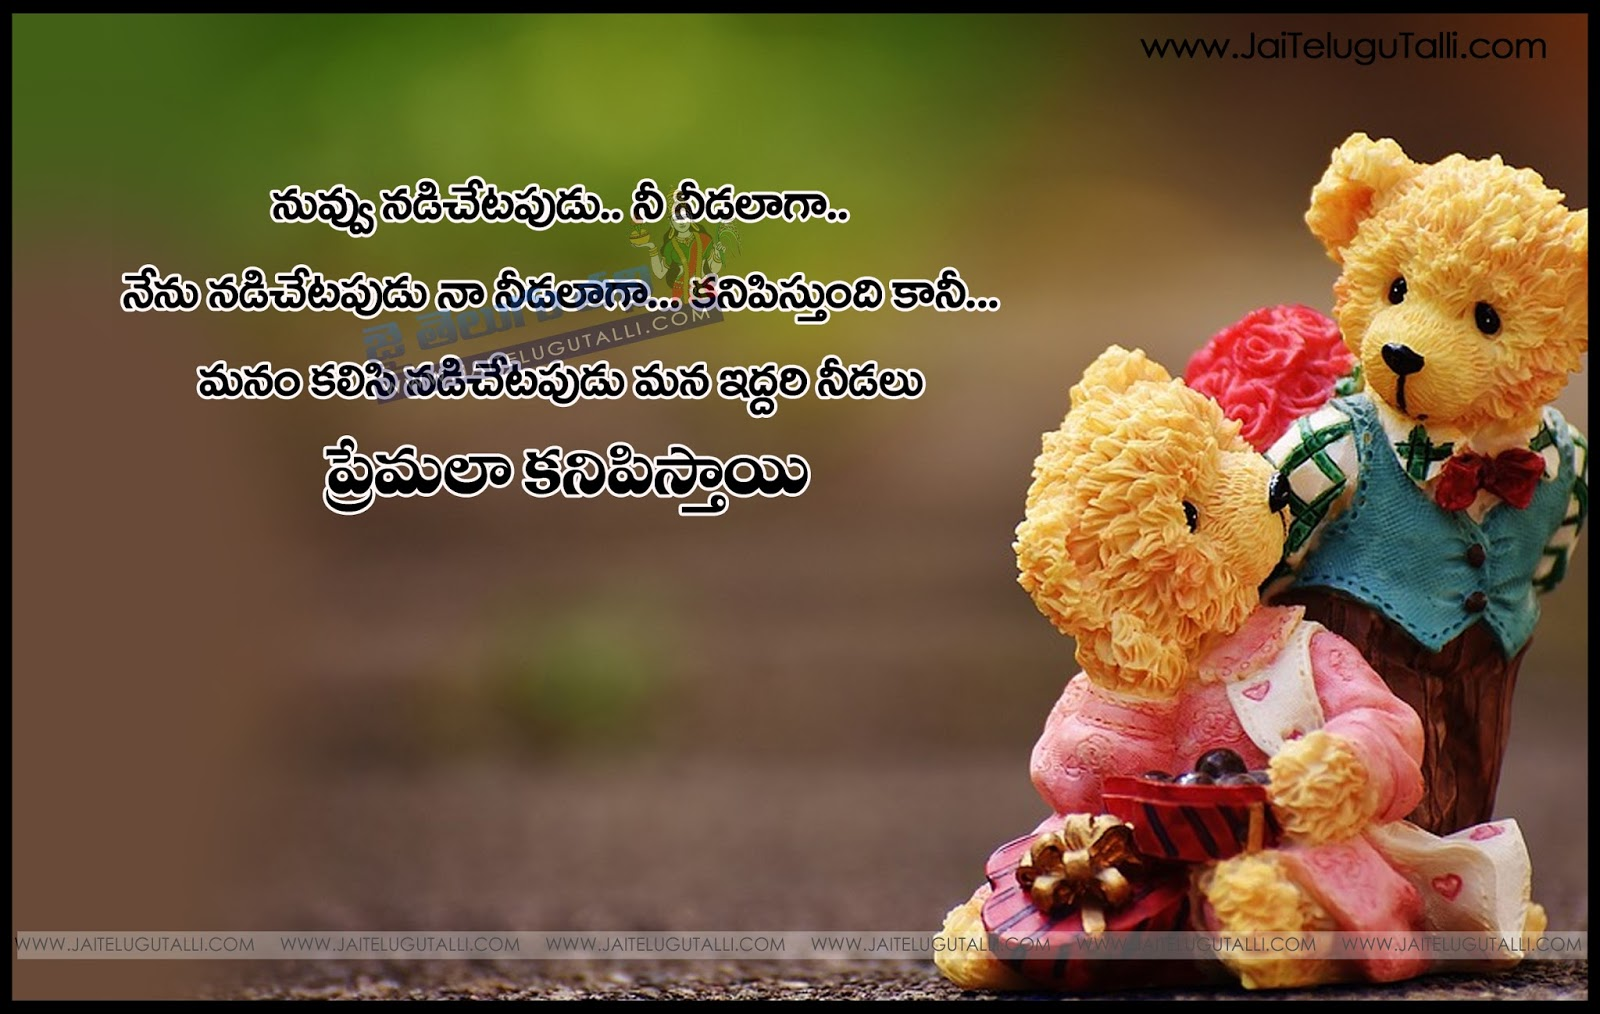 Heart Touching Love Quotes Classy Love Quotes In Telugu Hd Pictures Cute Heart Touching Love